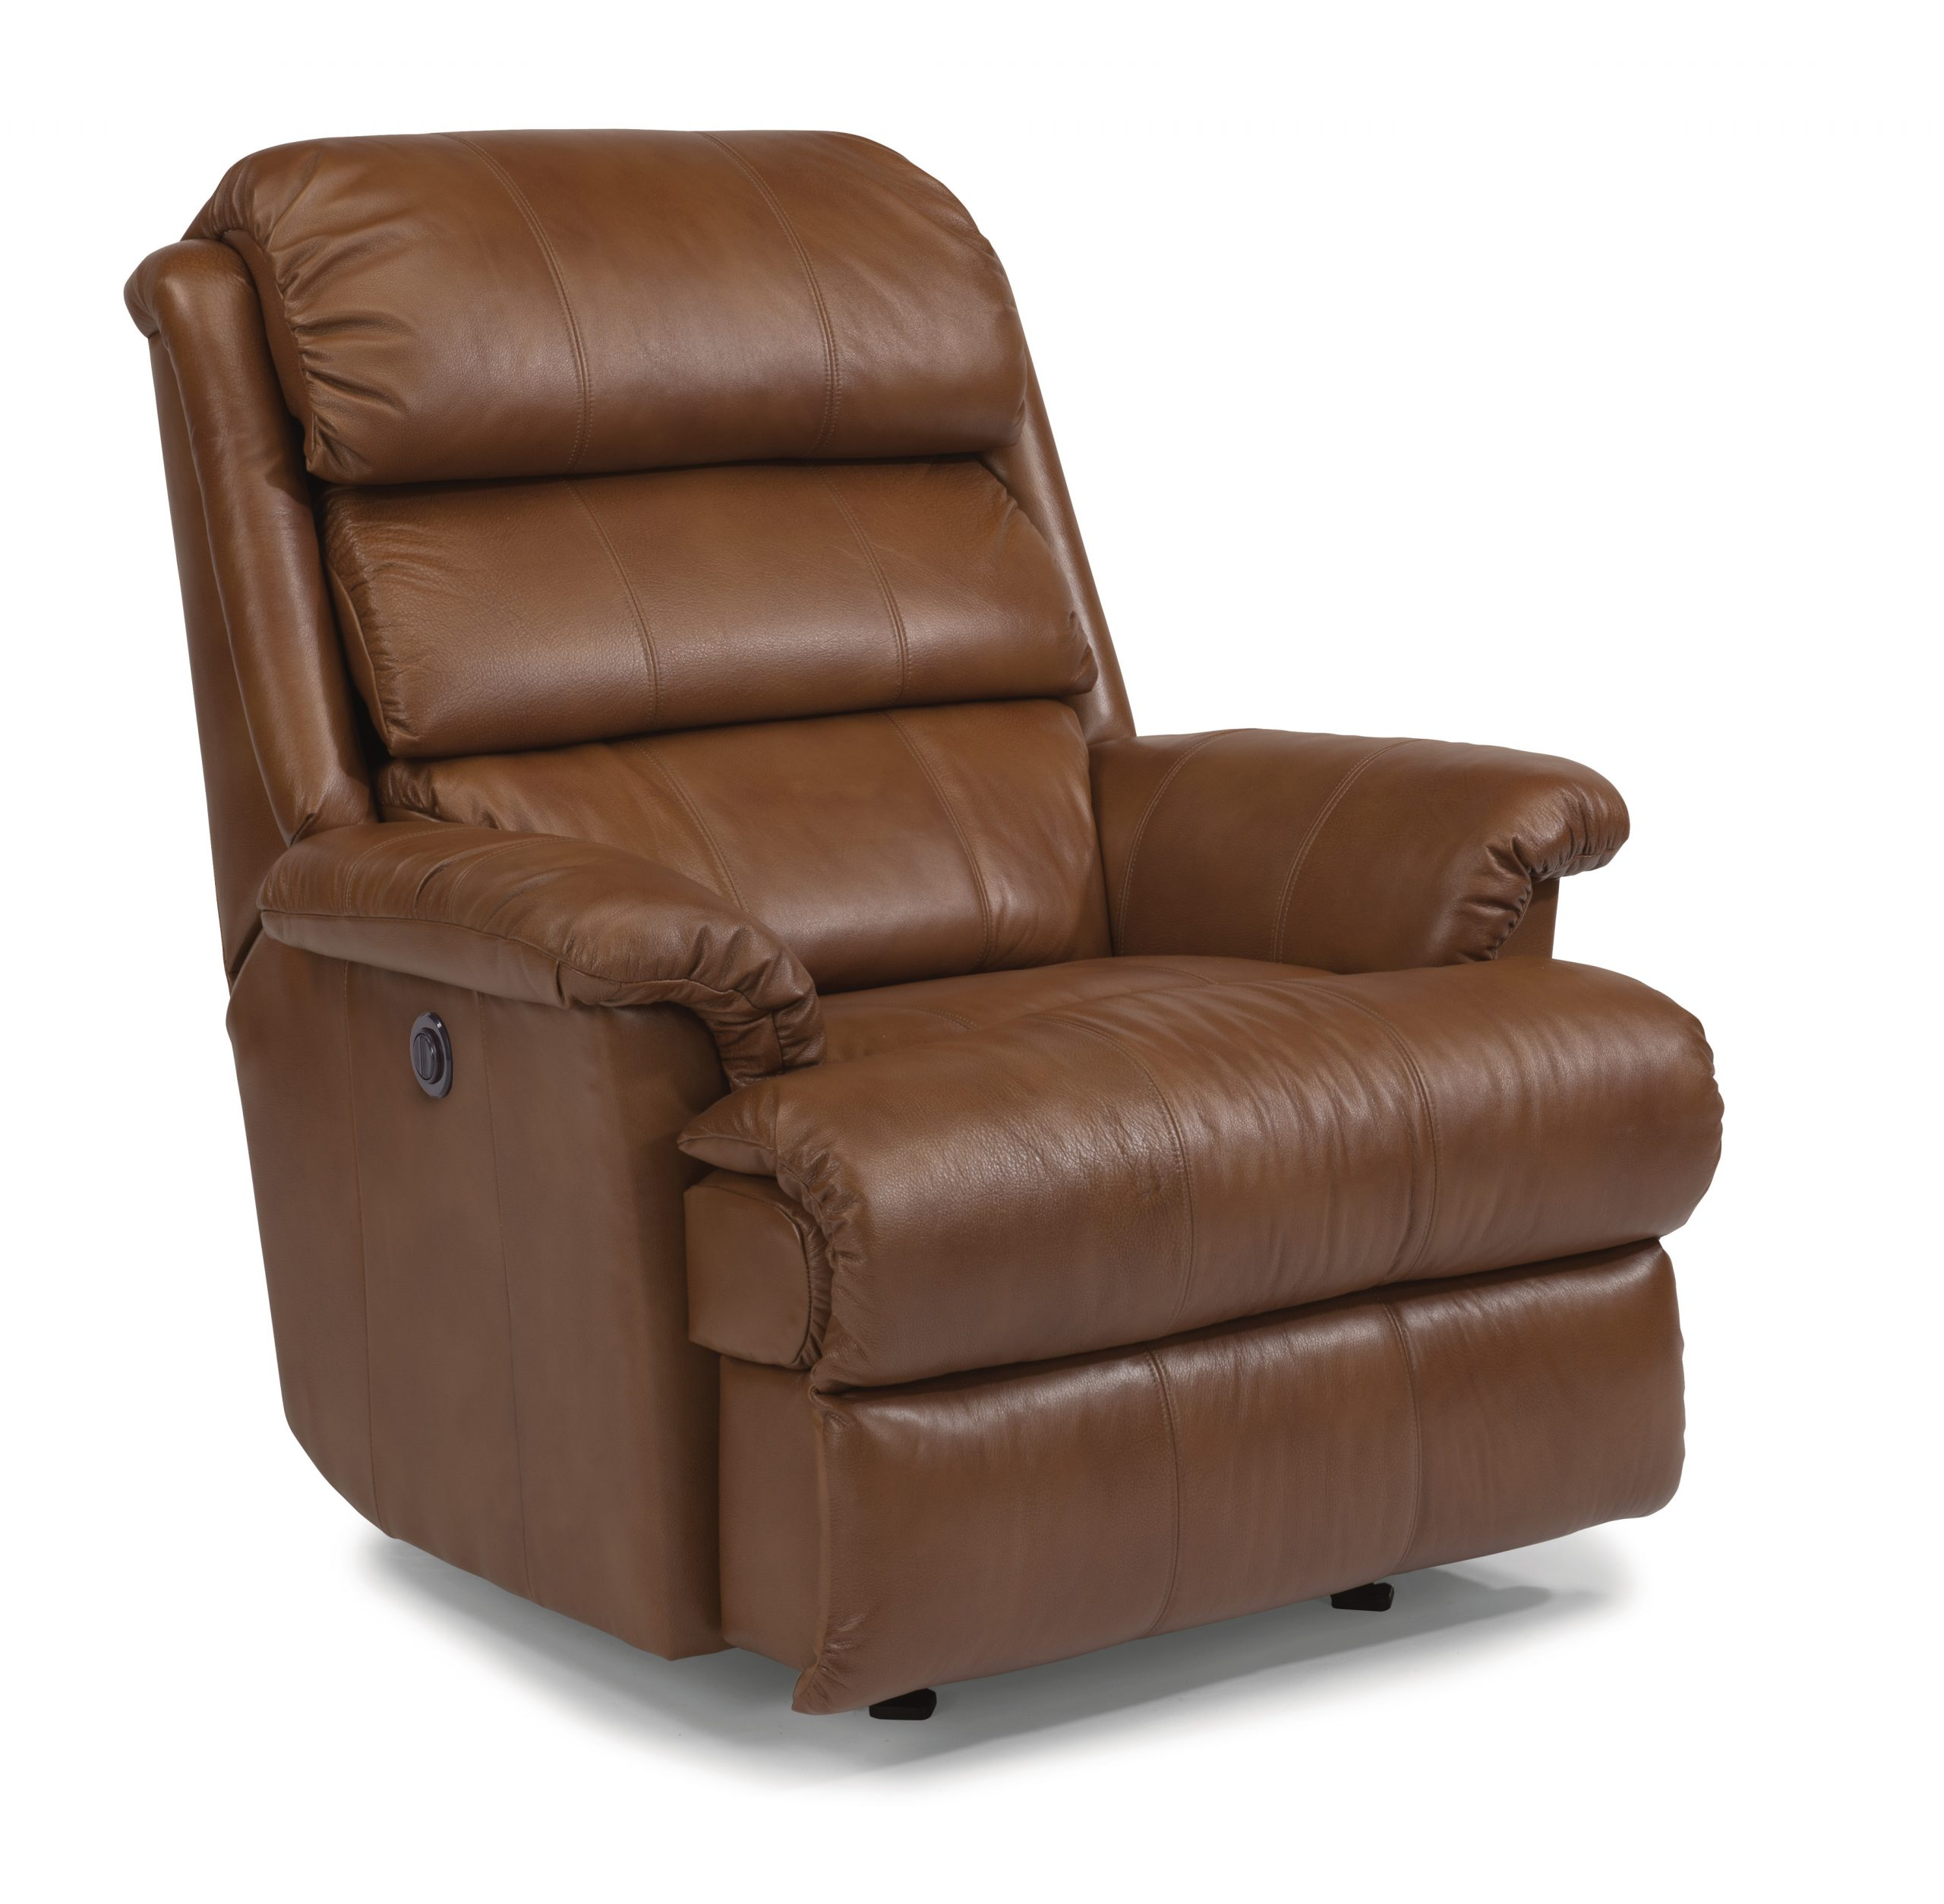 Flexsteel Yukon Big and Tall Leather Power Recliner (Recliners)